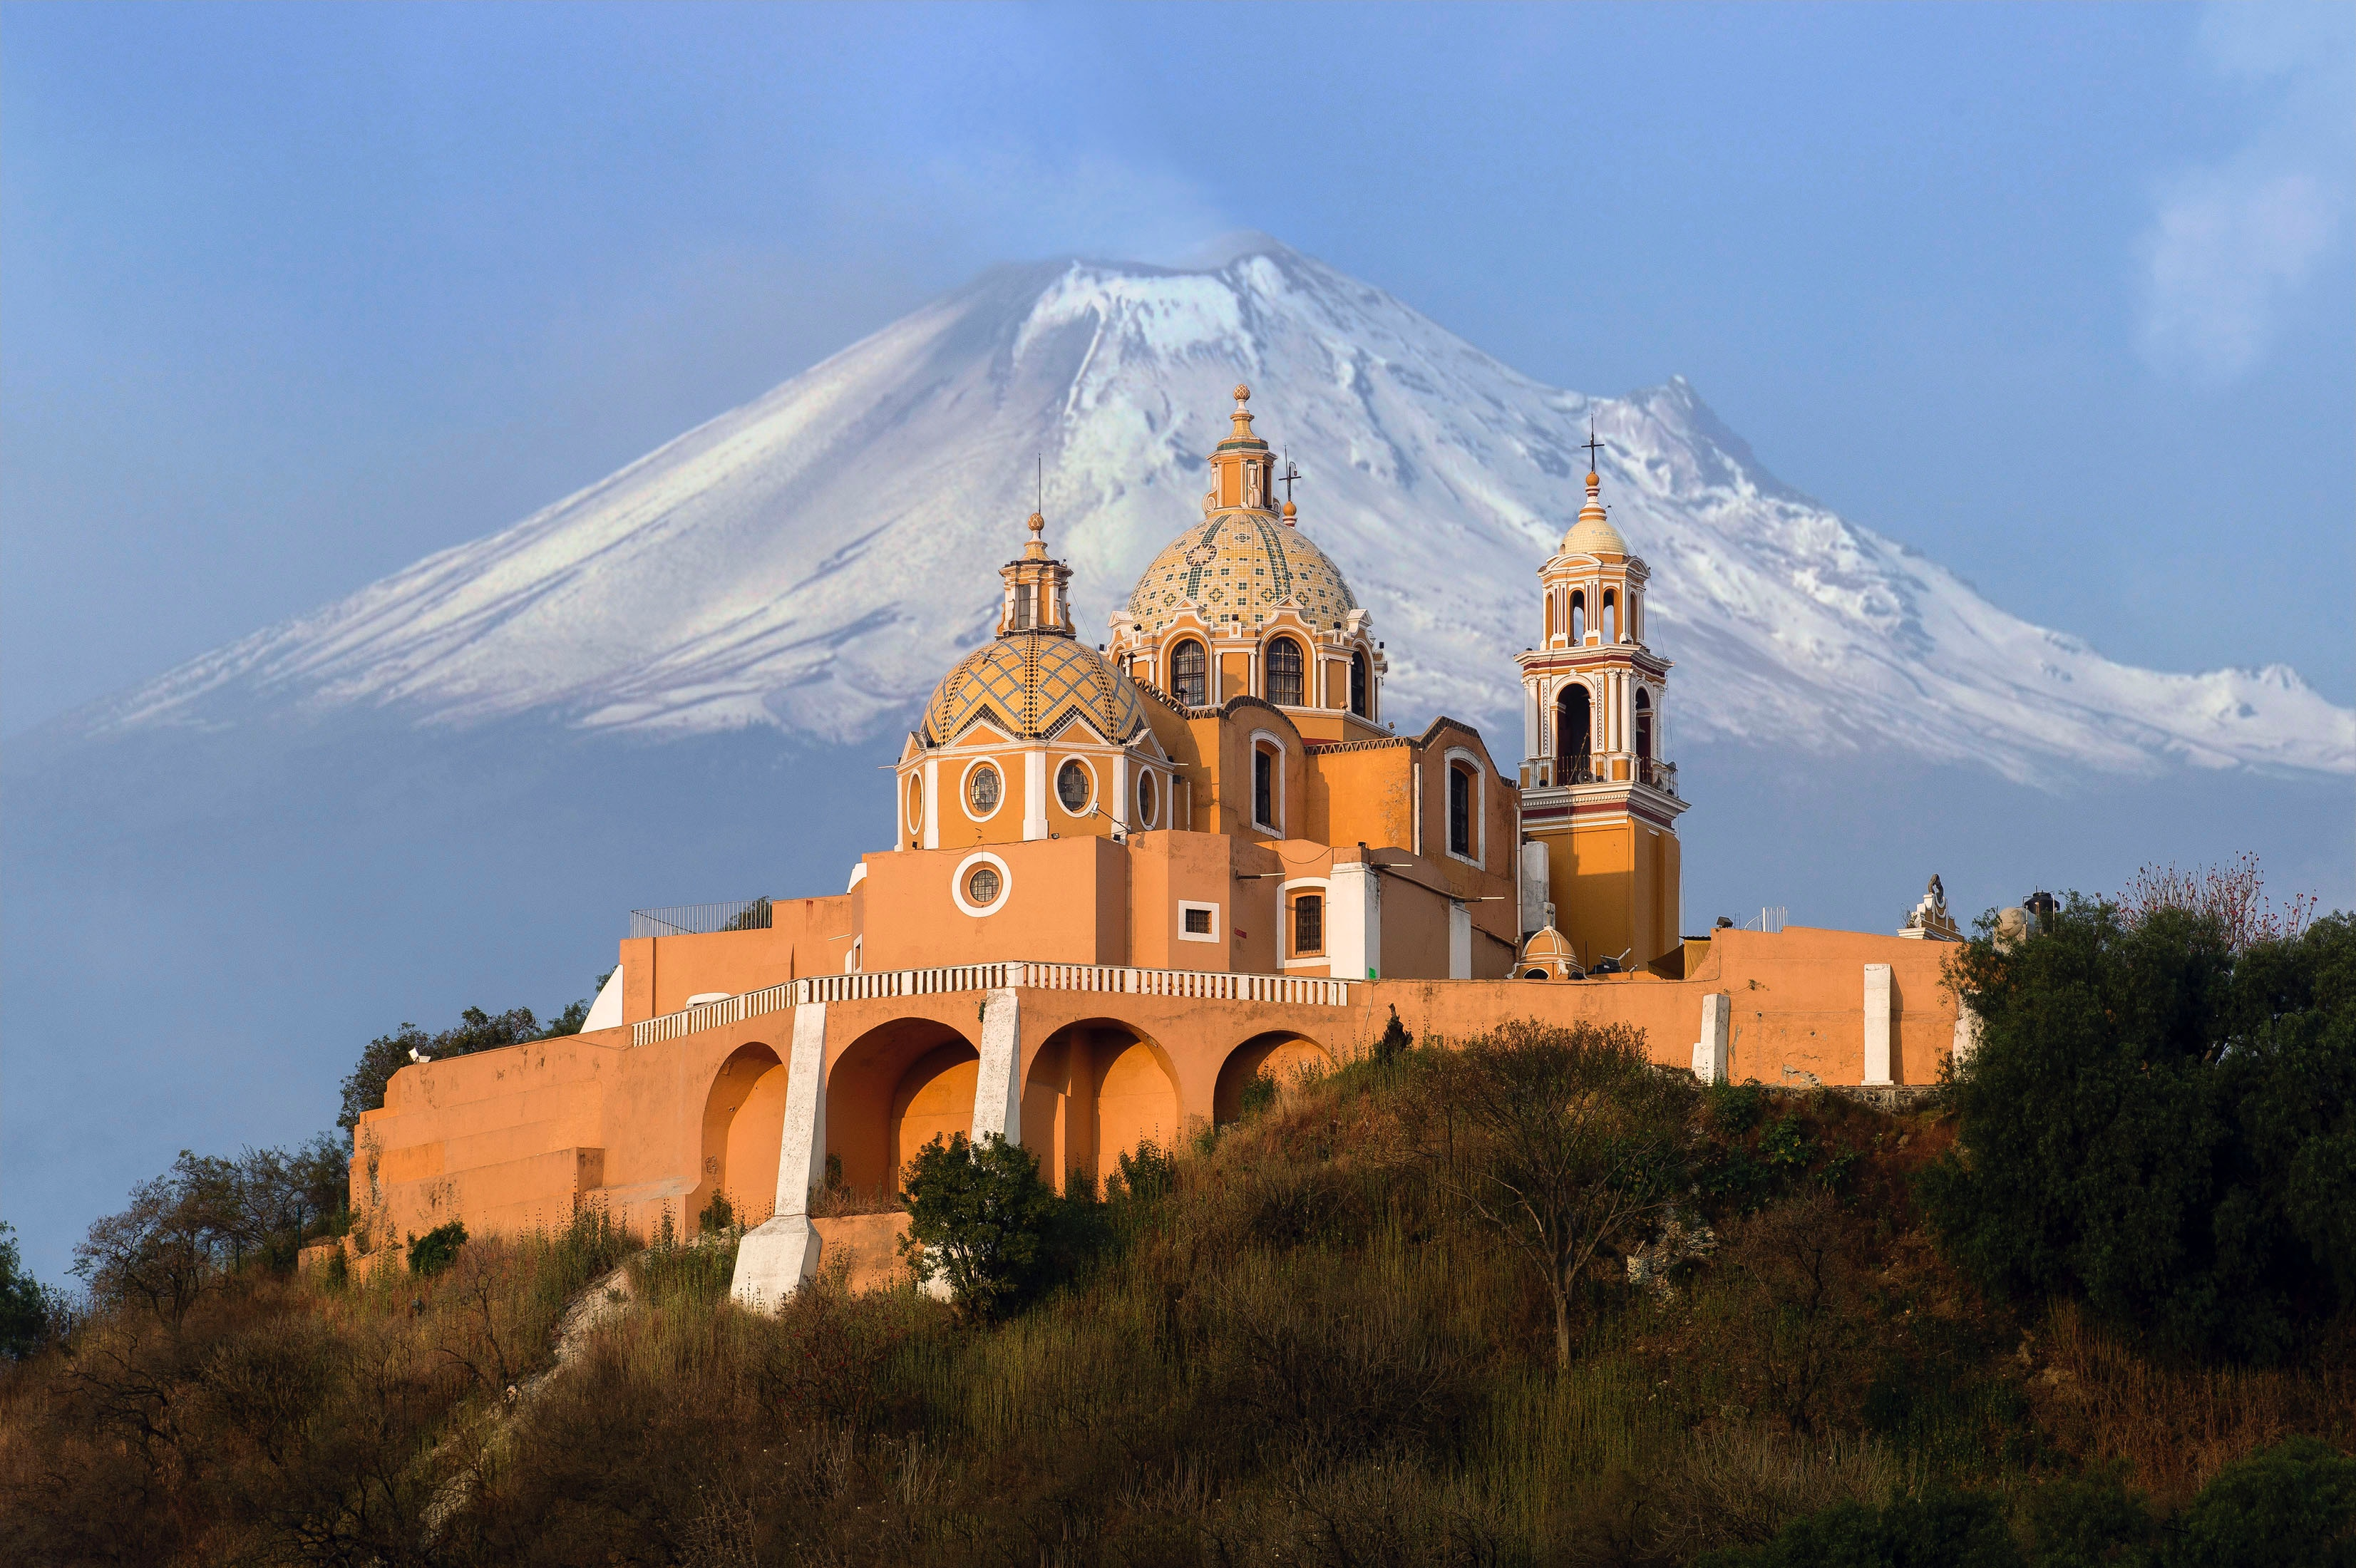 Image of a Catholic church in Mexico